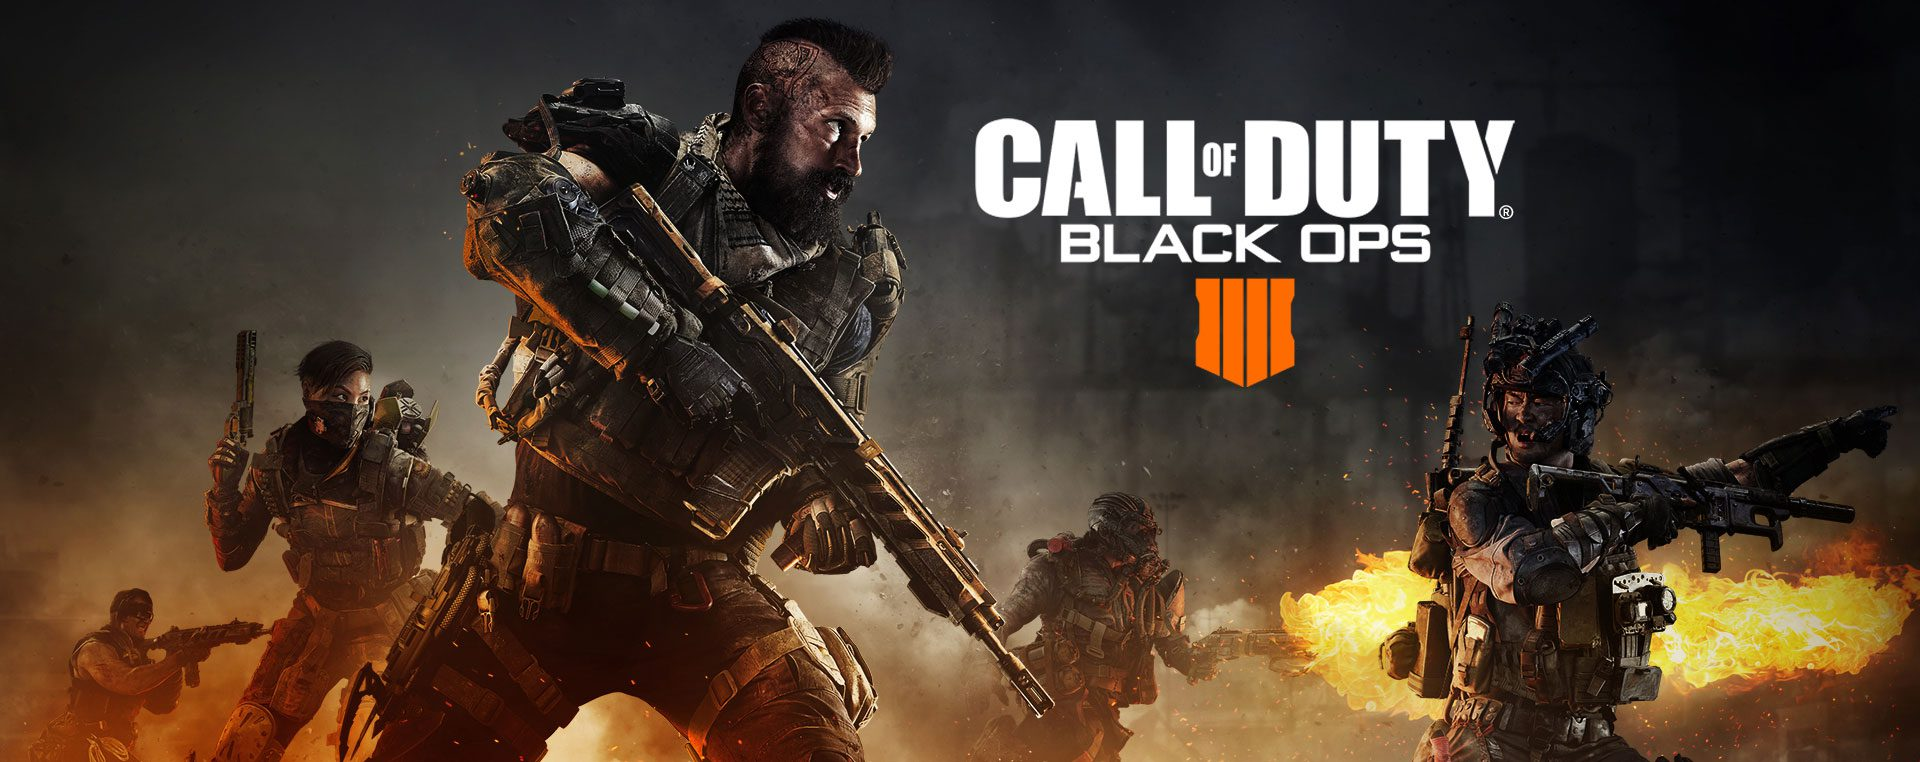 Call of Duty Black ops 4 (PC): Blackout Friday stream.